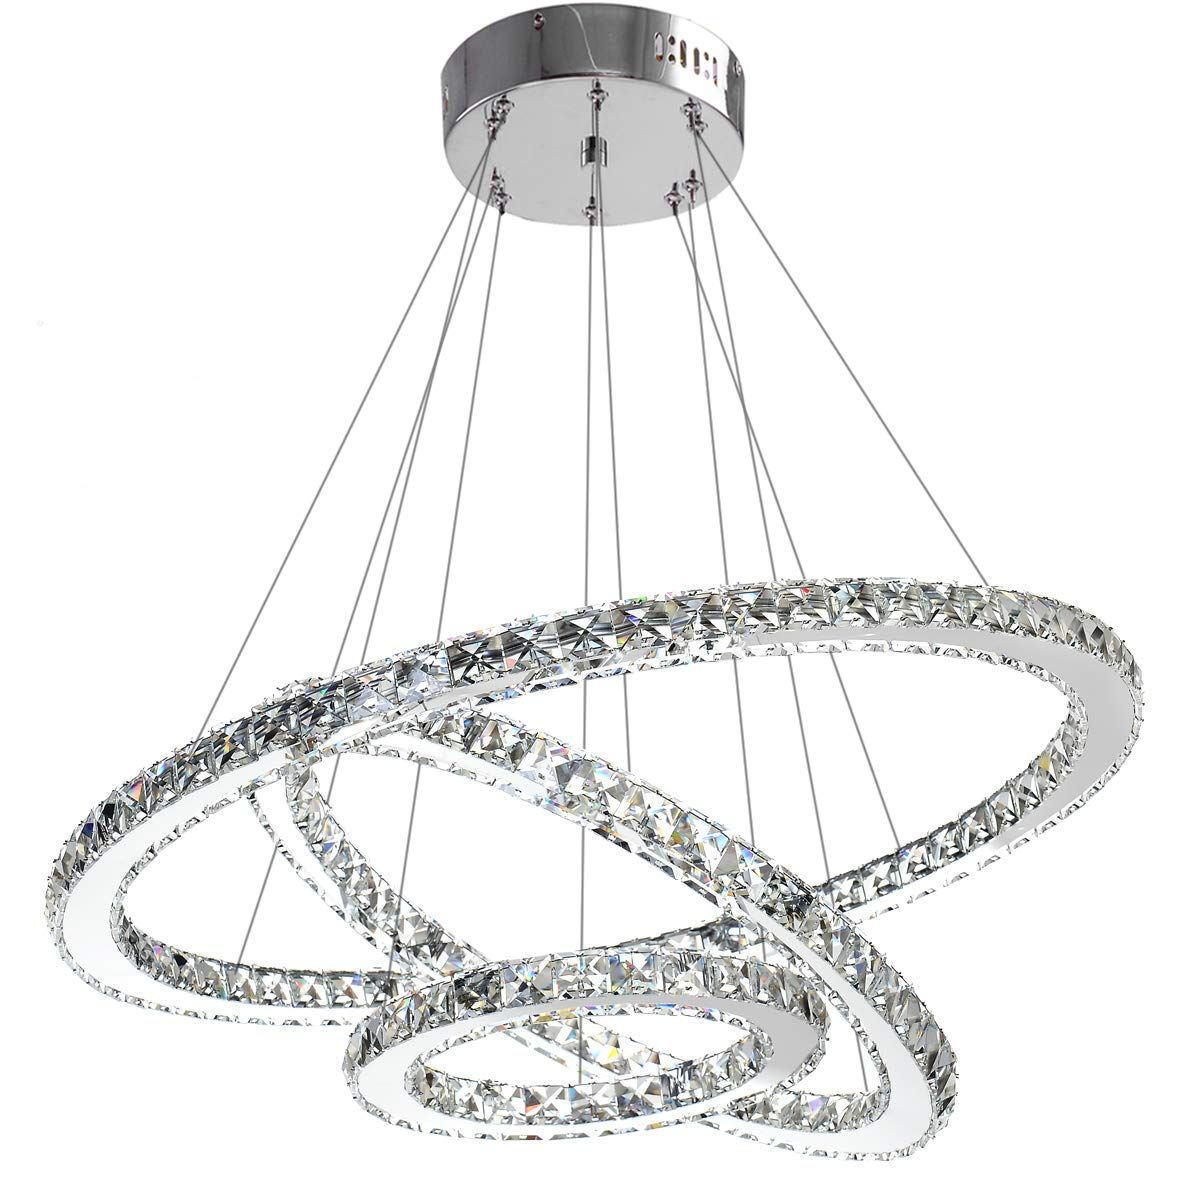 Modern Crystal Chandelier Lighting Ceiling Dining Room Living Room Chandeliers Contemporary Led Light Fixtures Hanging 3 Ring Foyer Girls Bedroom Pendant Lights In 2020 Modern Crystal Chandelier Crystal Chandelier Lighting Chandelier Lighting